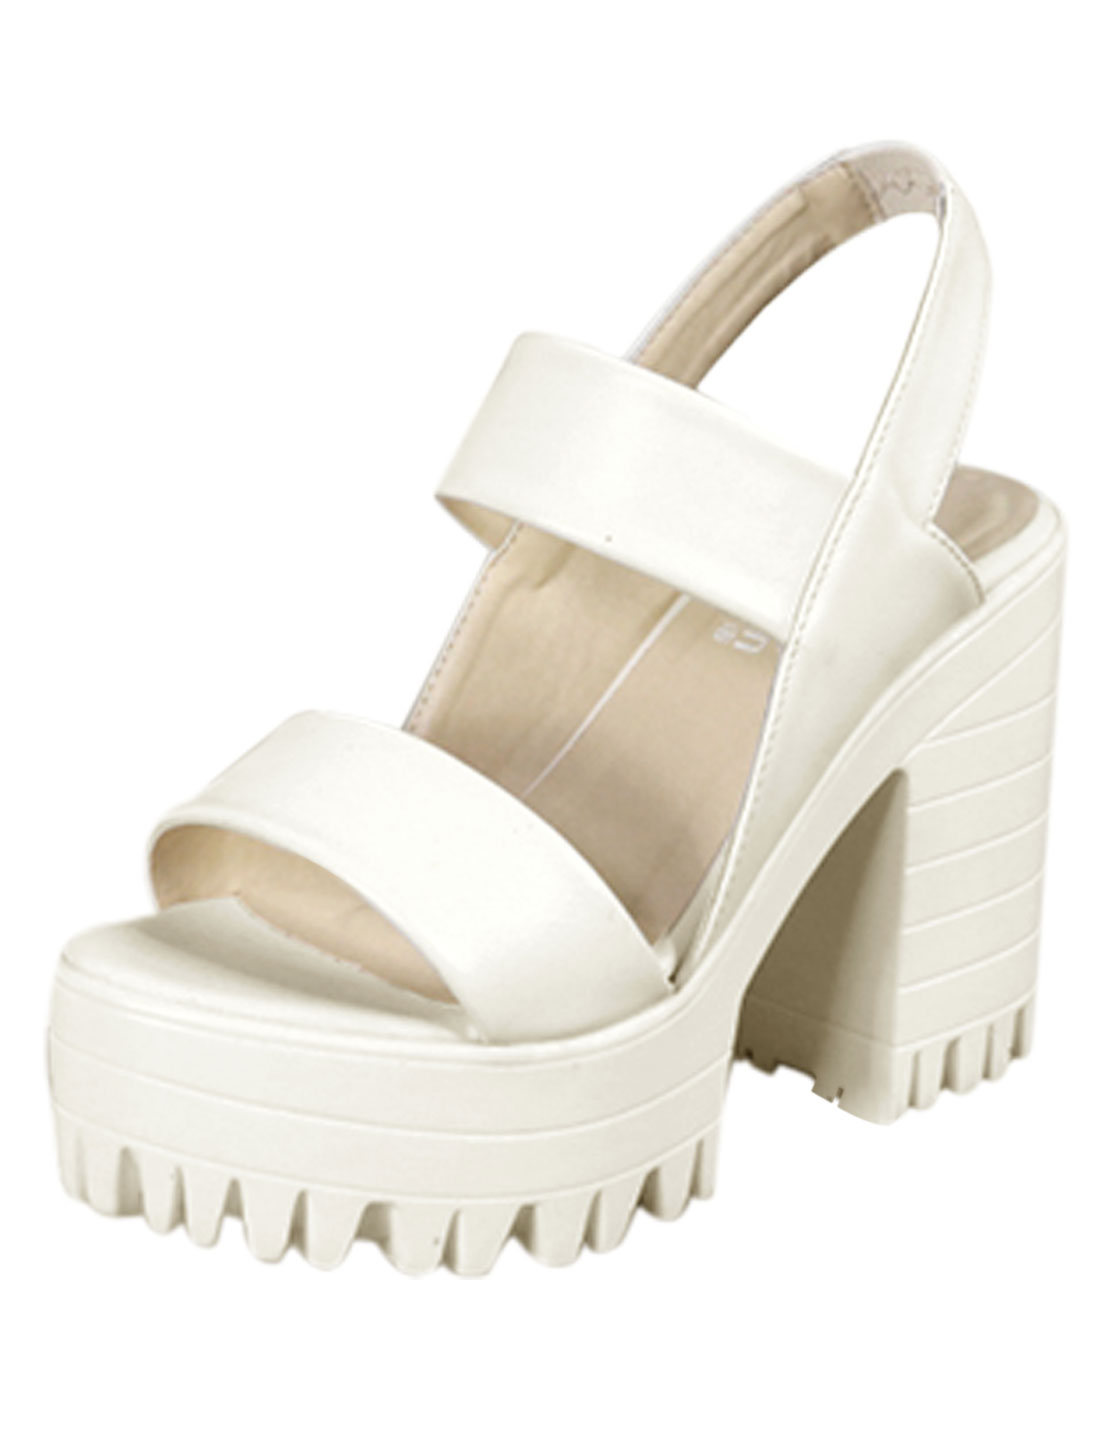 Ladies Ankle Strap Chunky Heels Summer Relaxed Platform Sandals White US 6.5